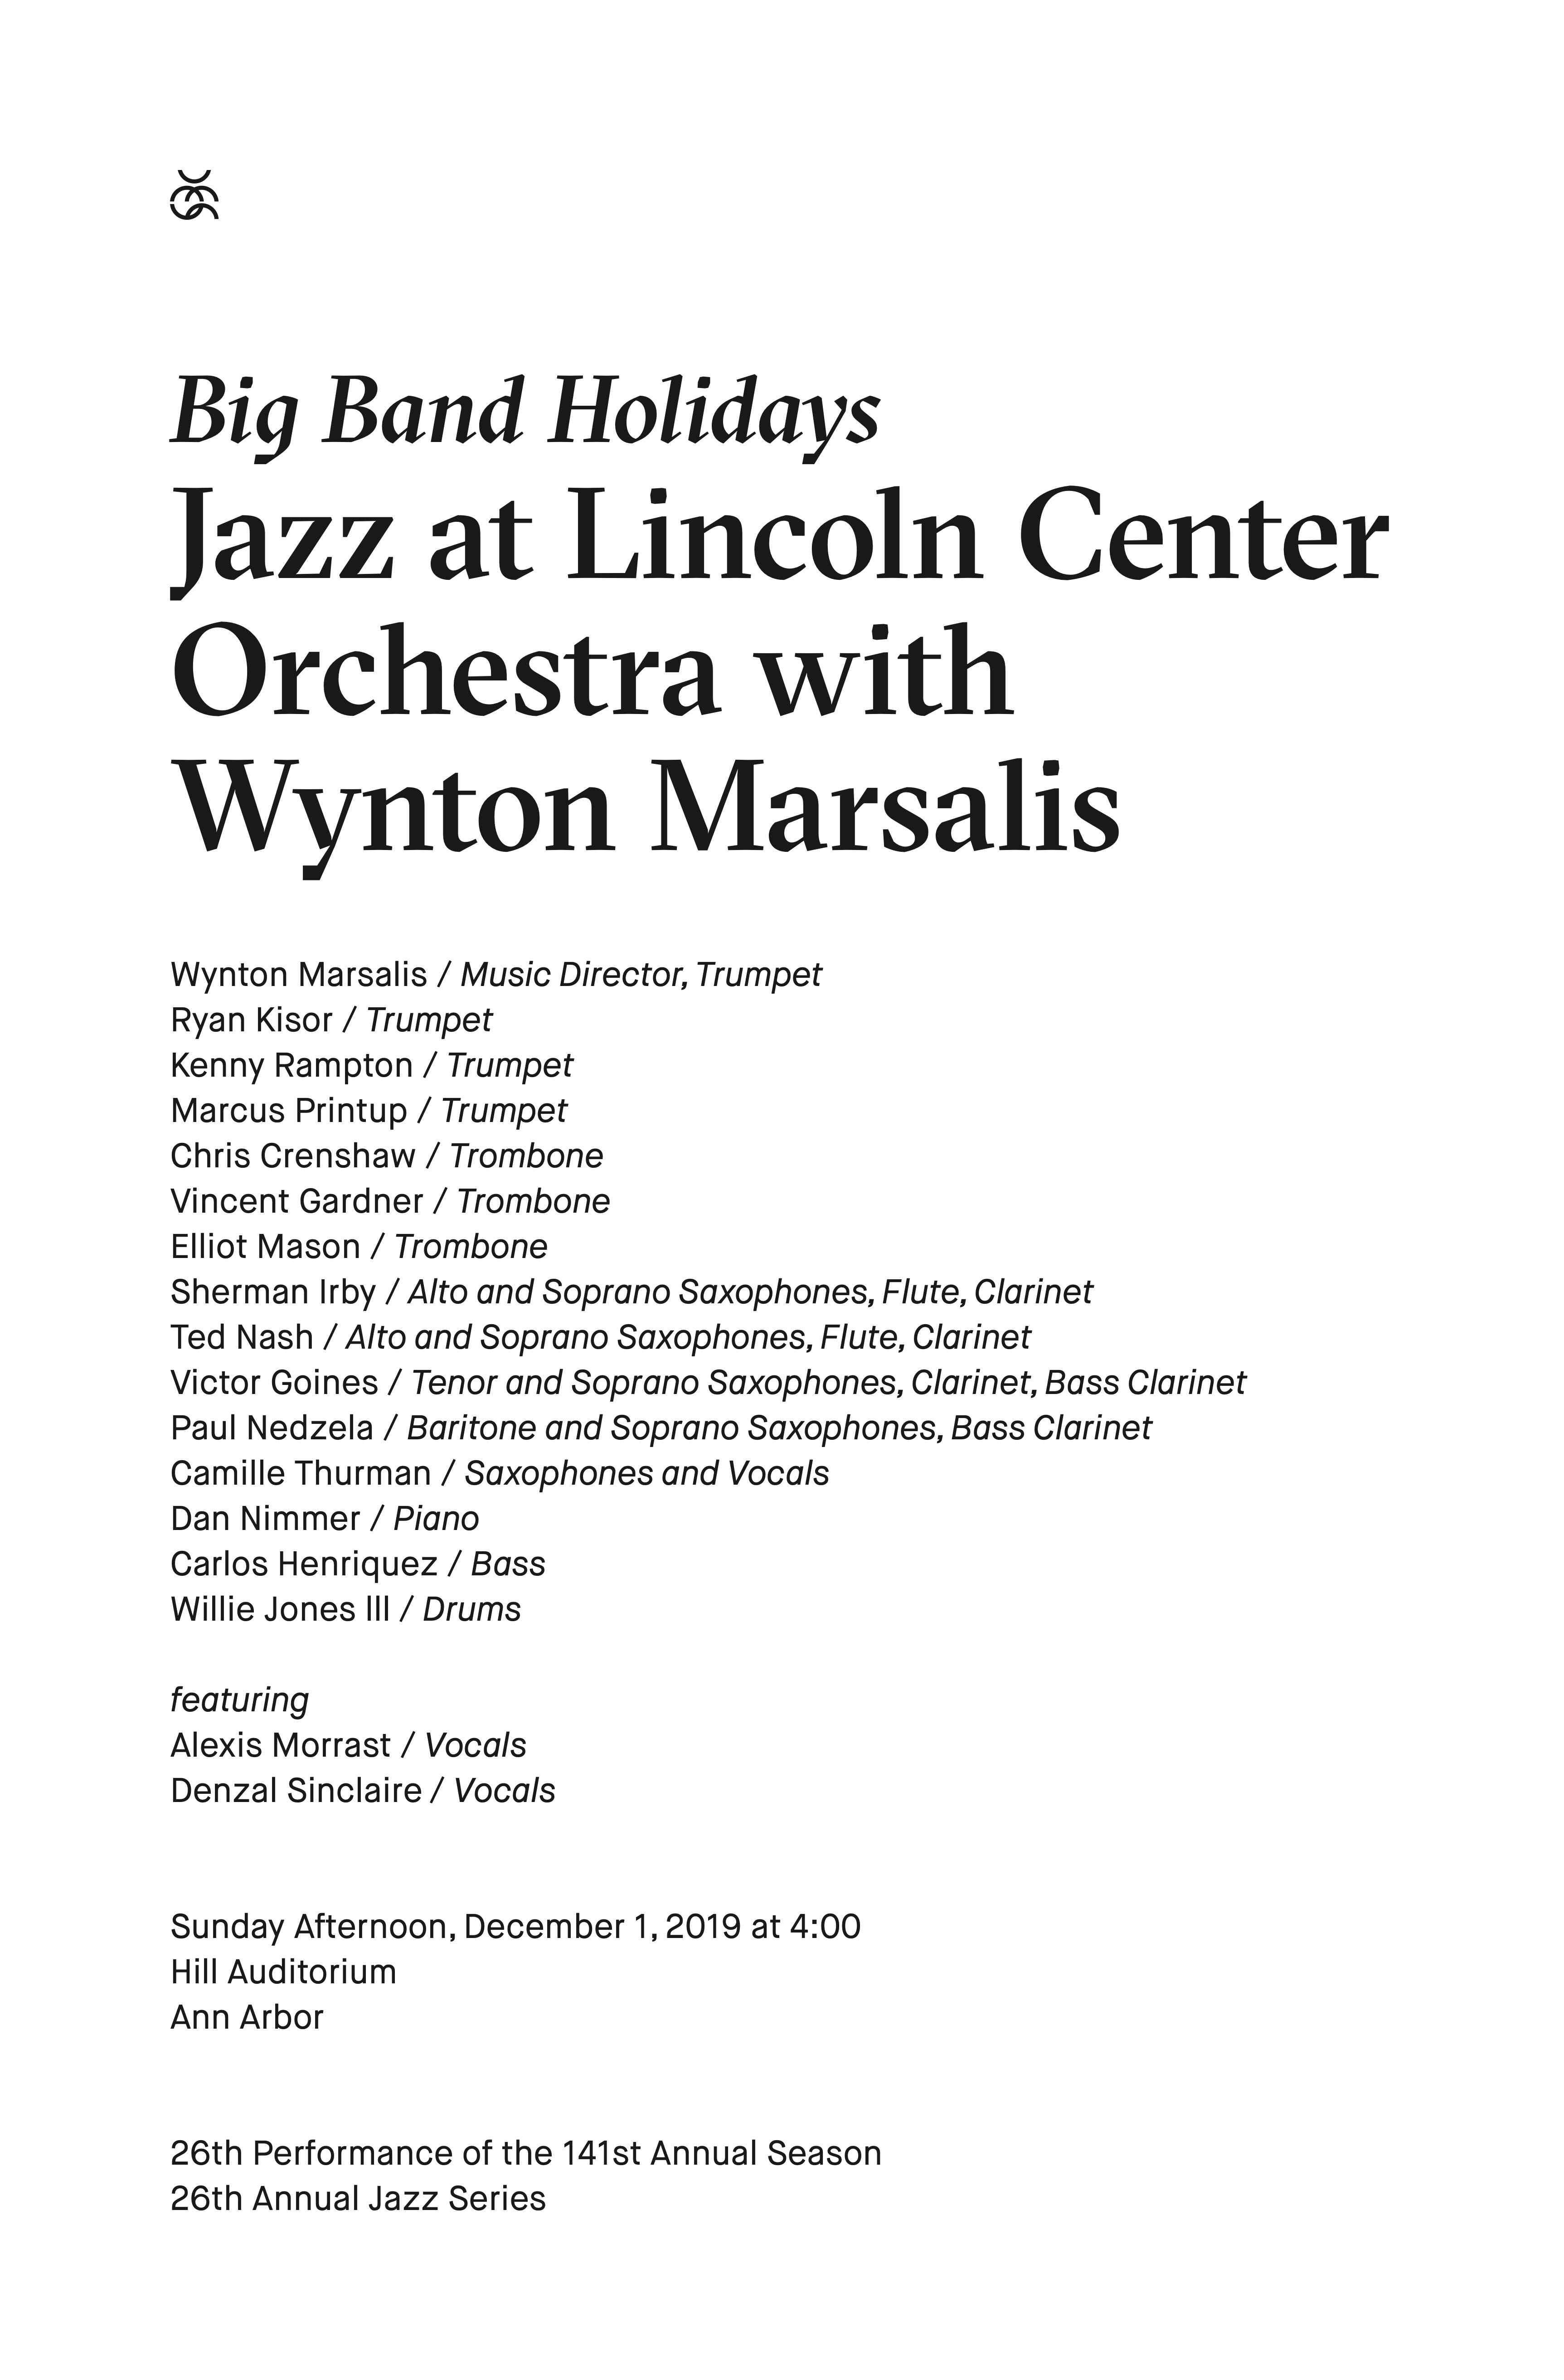 UMS Concert Program, December 1, 2019 - Big Band Holidays: Jazz at Lincoln Center Orchestra with Wynton Marsalis image